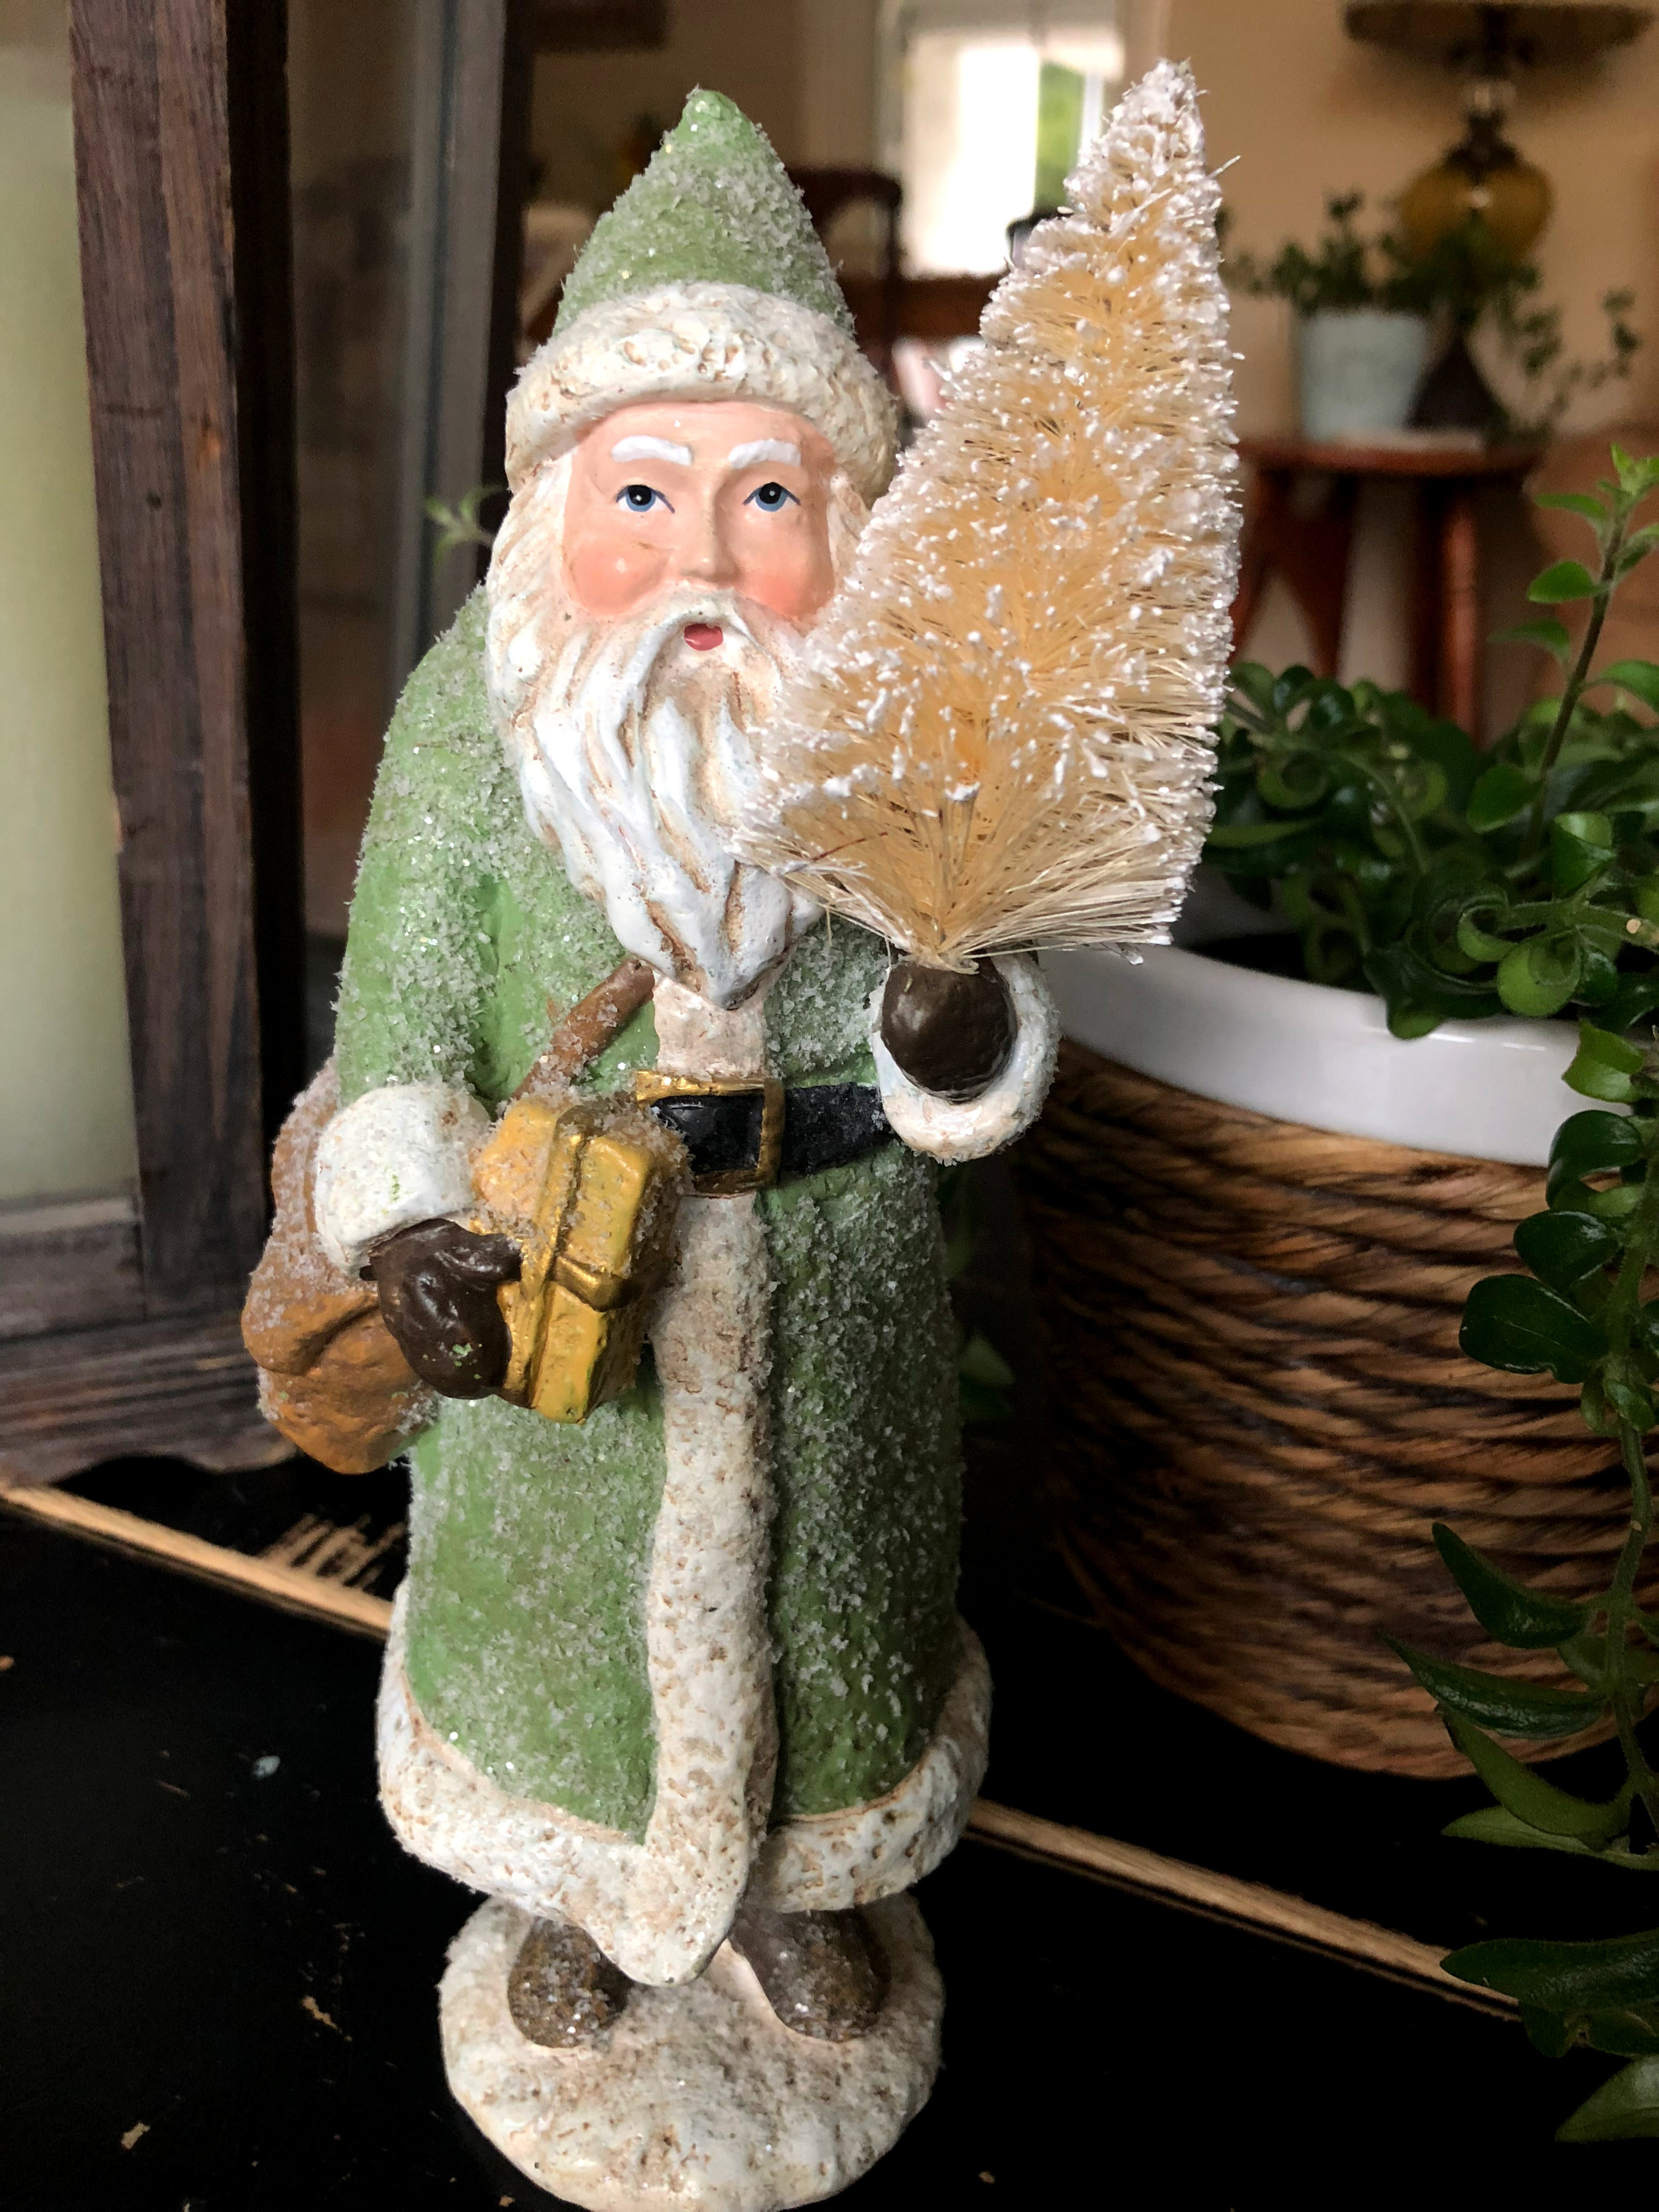 Or maybe this little vintage Santa will inspire the feel of your home this year…